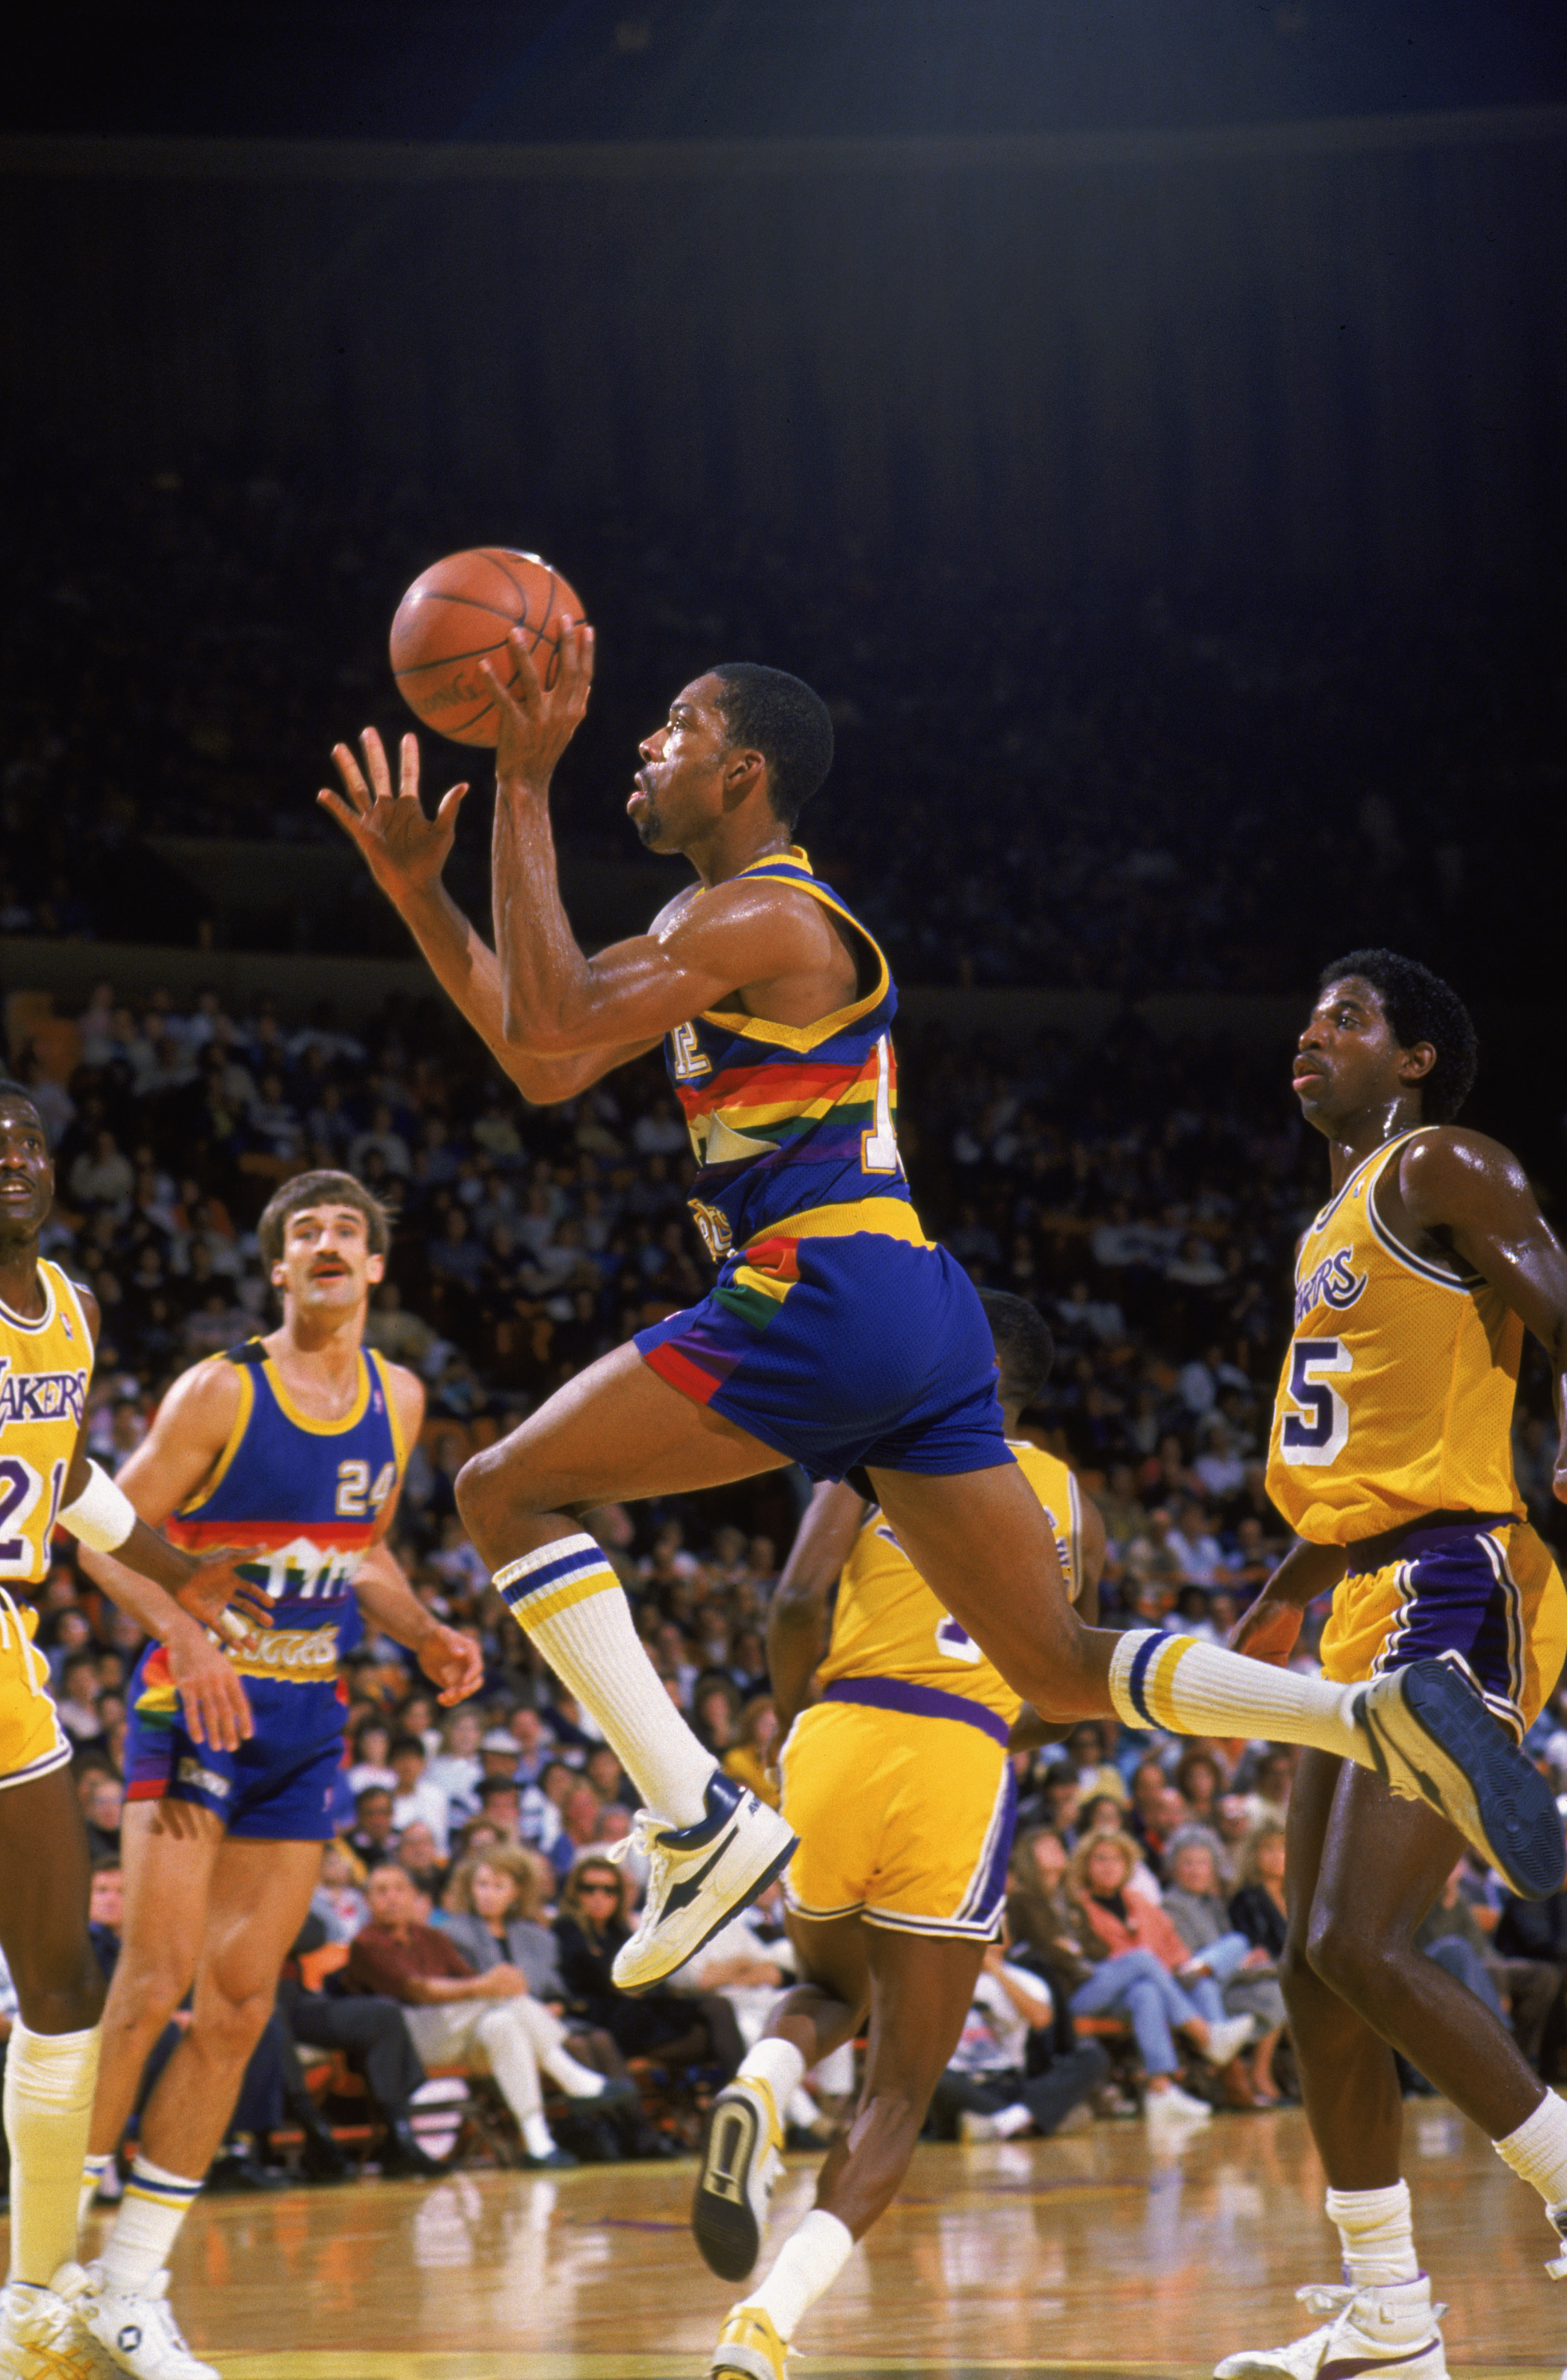 Nug s to retire Fat Lever s jersey number